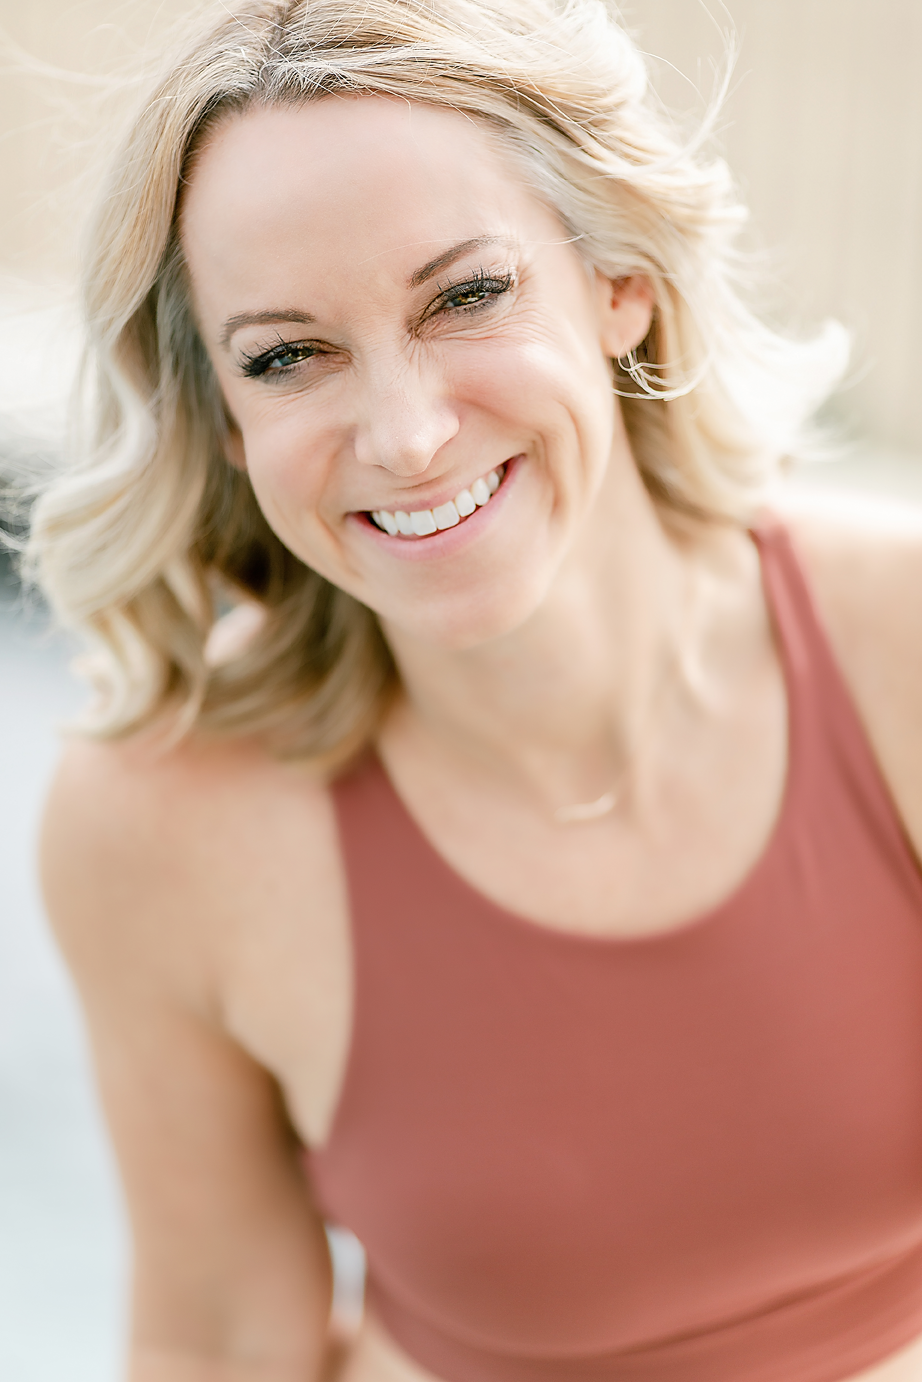 Frisco Personal Branding Session Health Coach 16 Kate Marie Portraiture.png